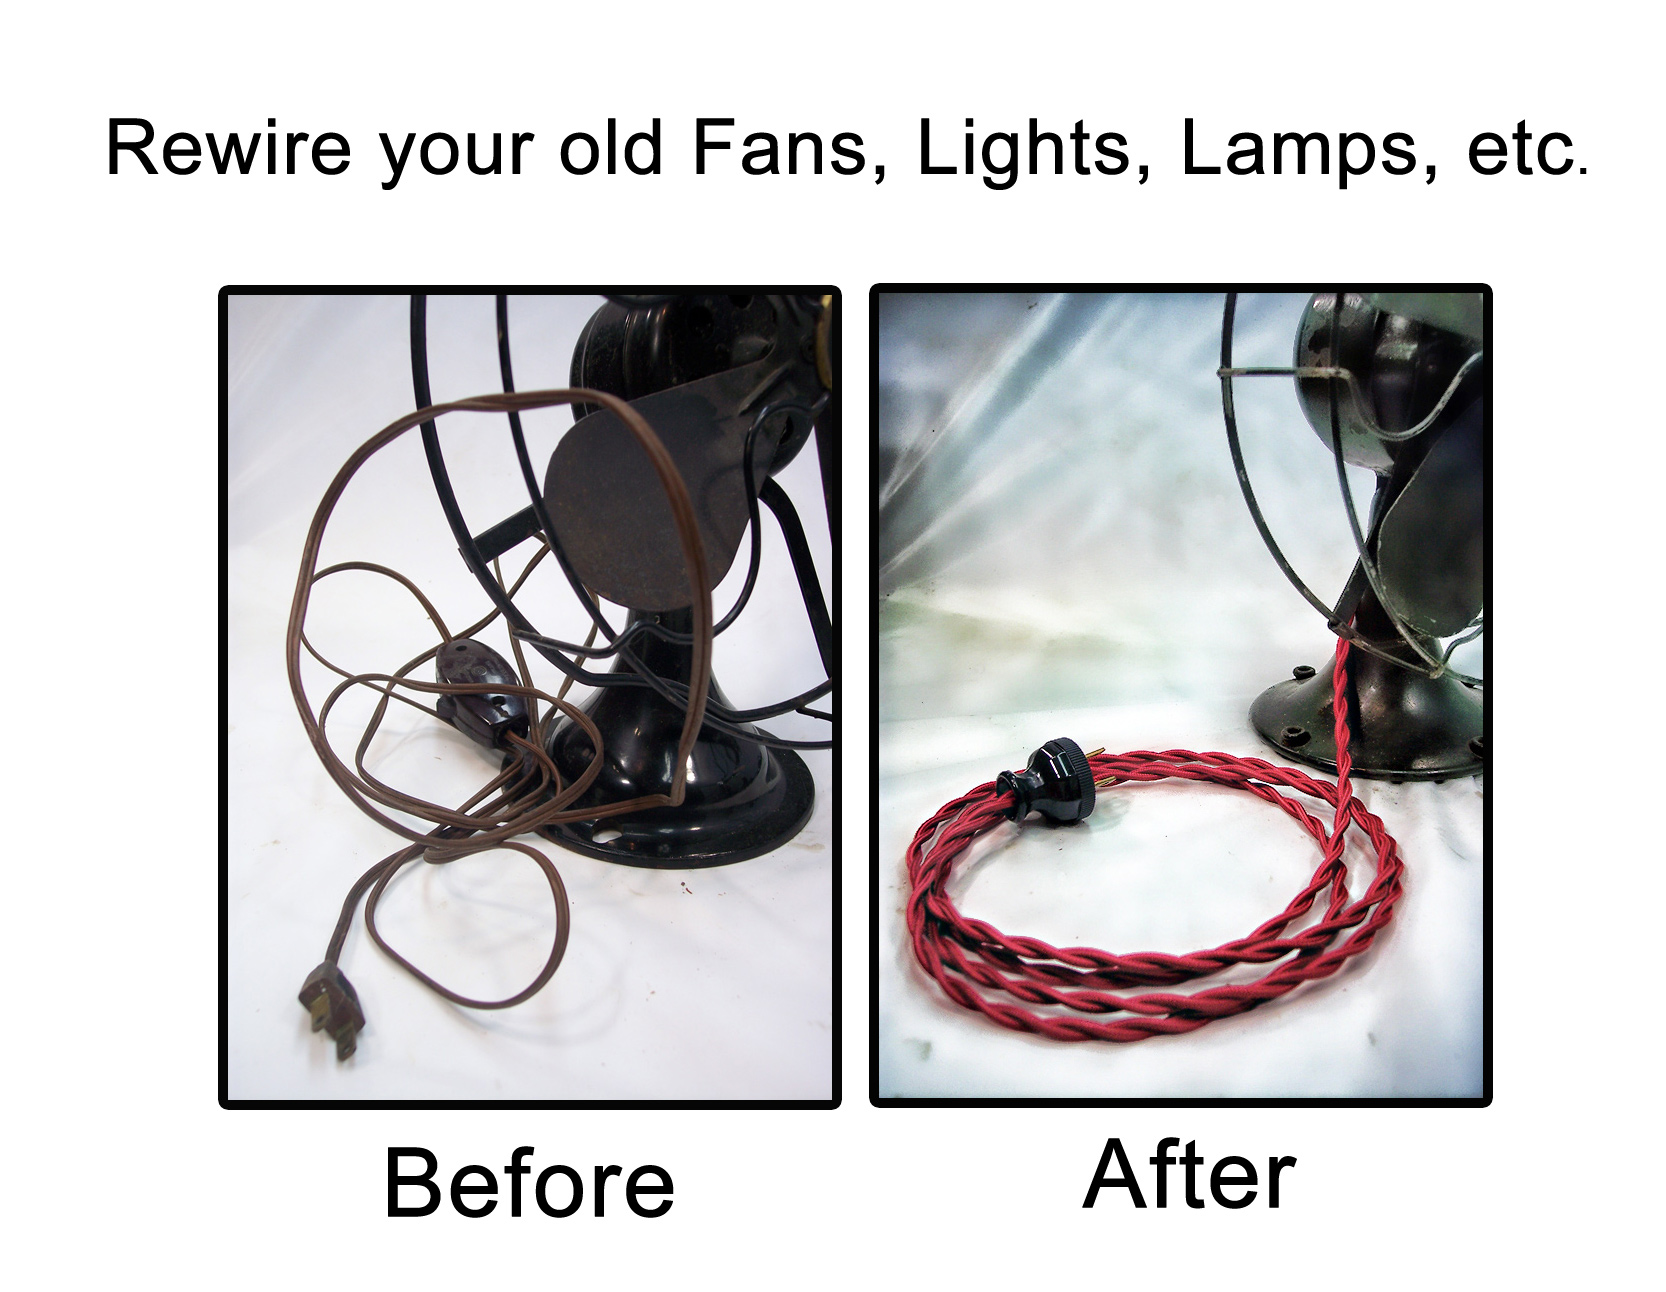 Stupendous Cloth Covered Rewire Kits For Lamp Fan Restorations Wiring Cloud Nuvitbieswglorg